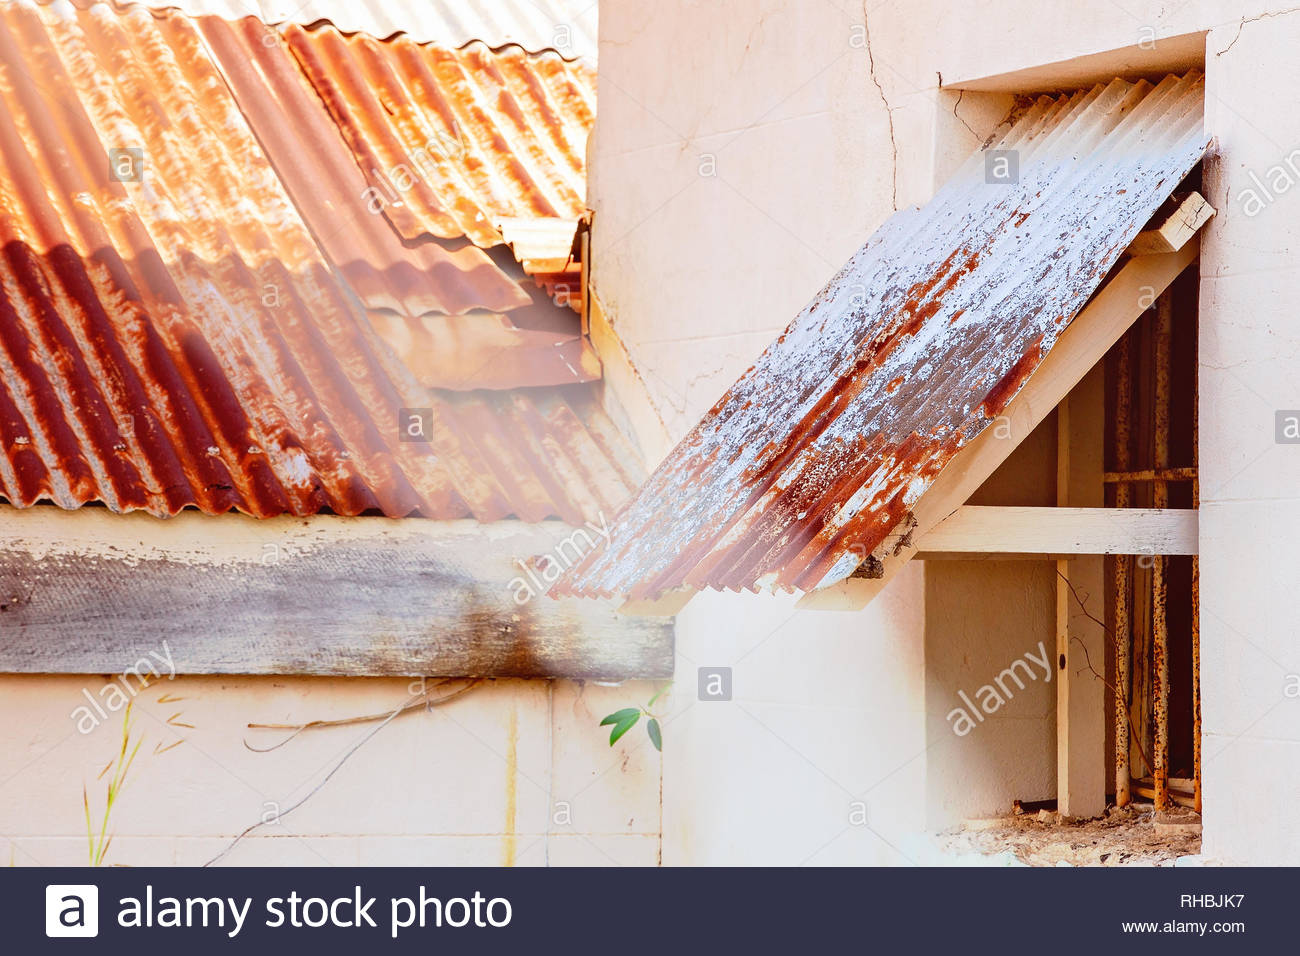 Corrugated Iron Shelter Stock Photos Amp Corrugated Iron